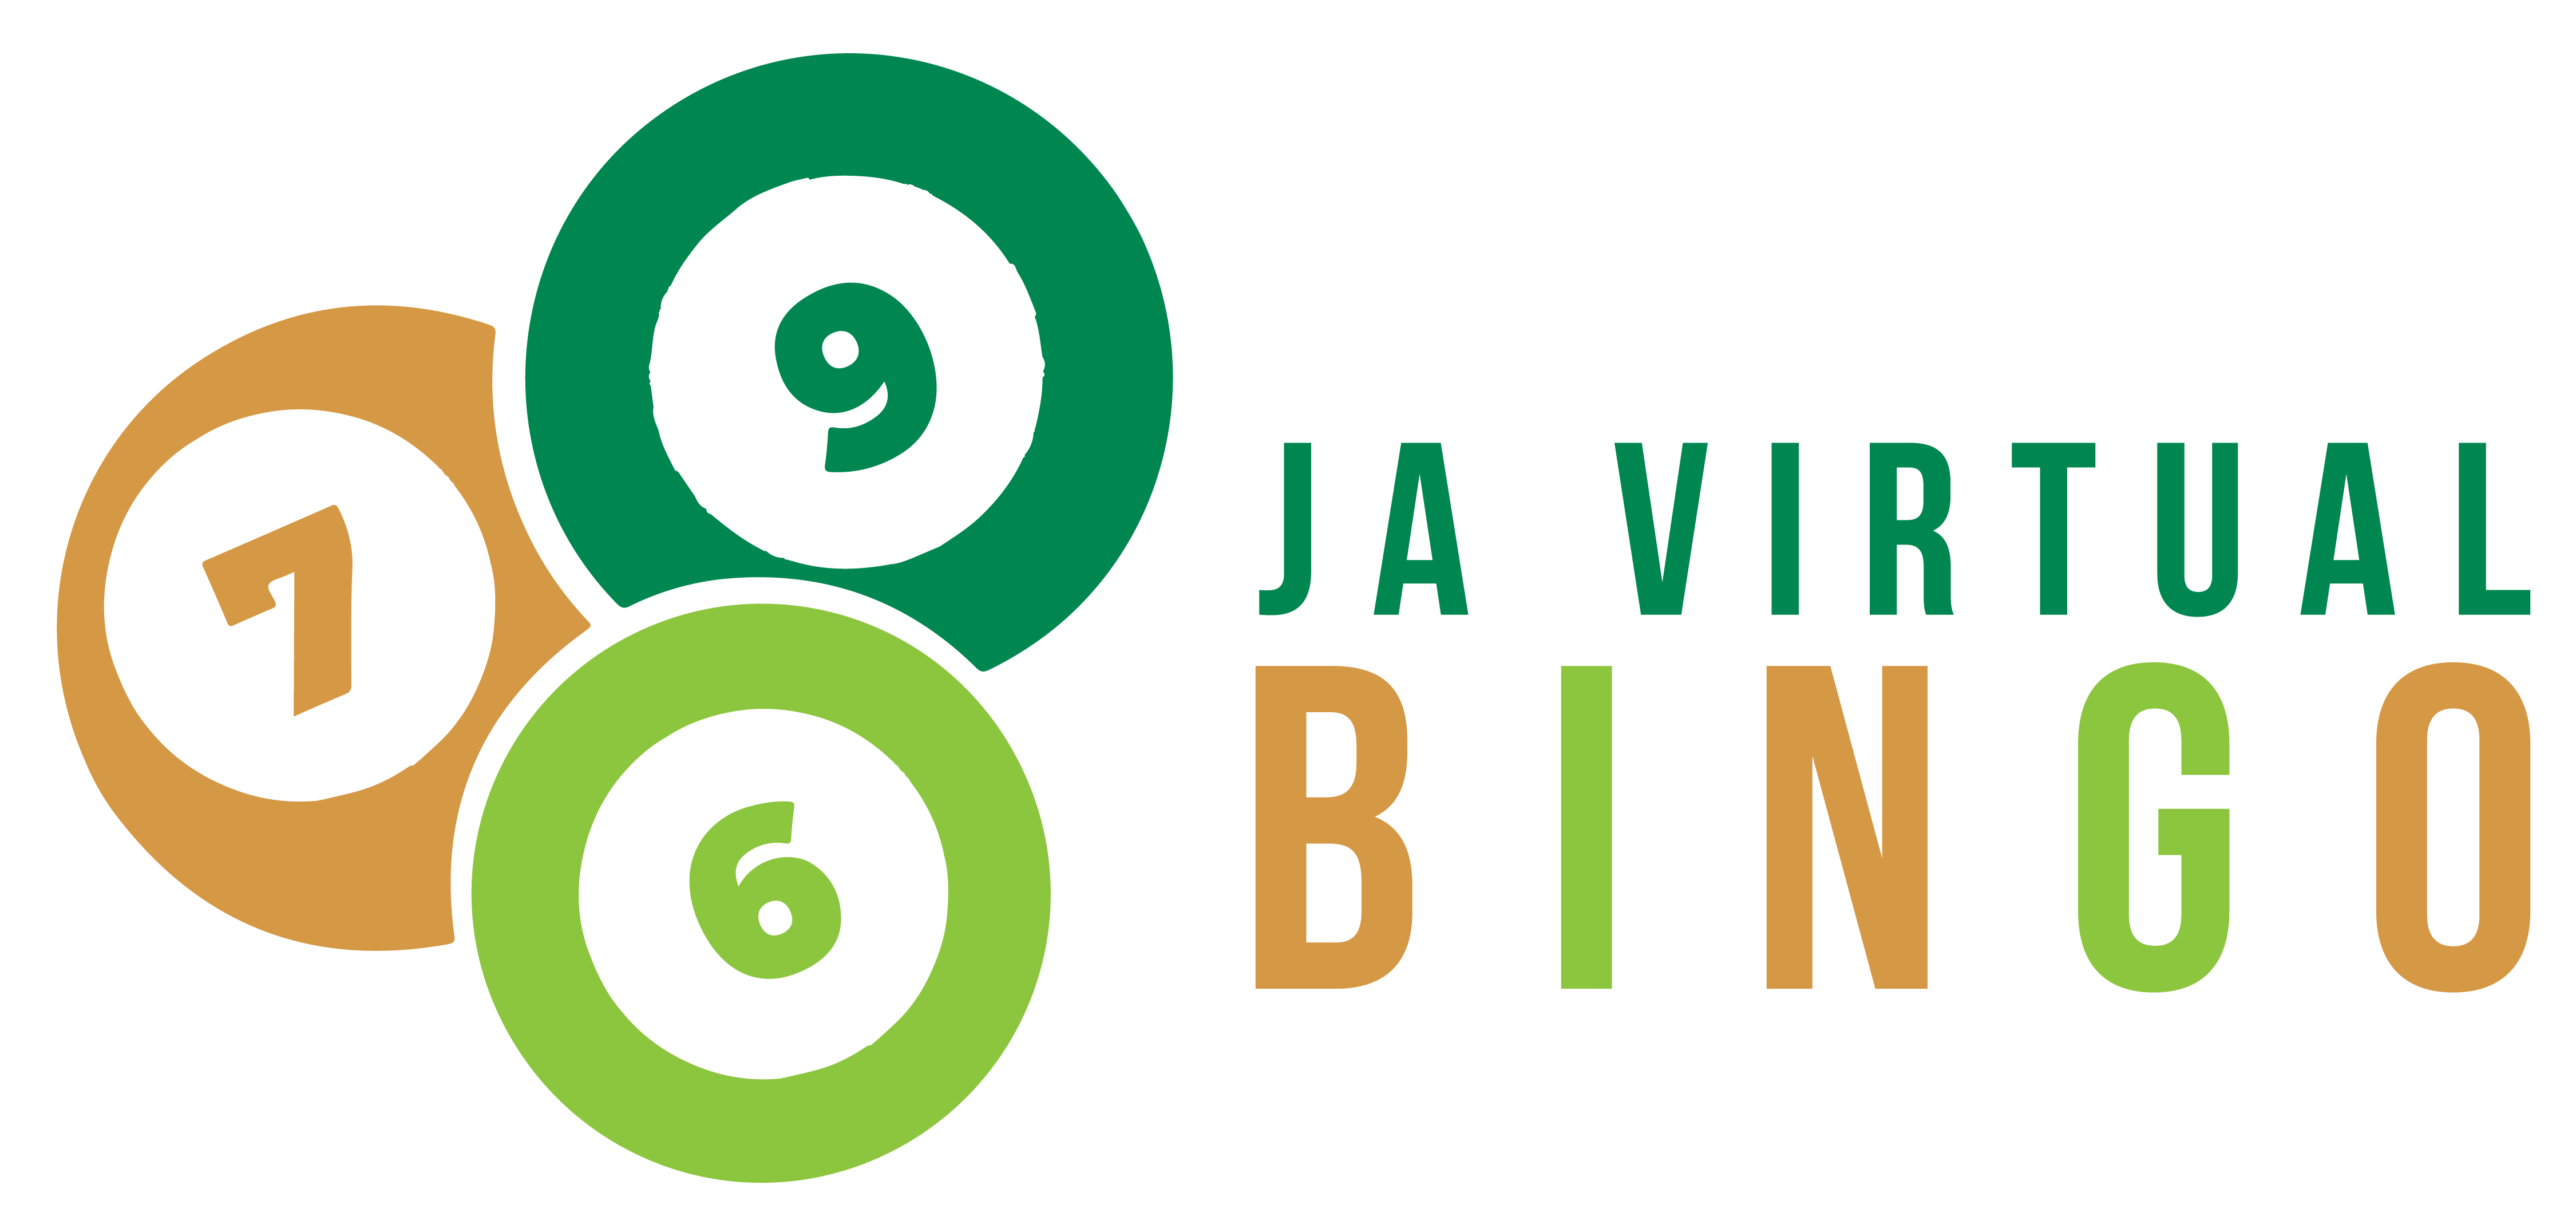 JA Virtual Bingo